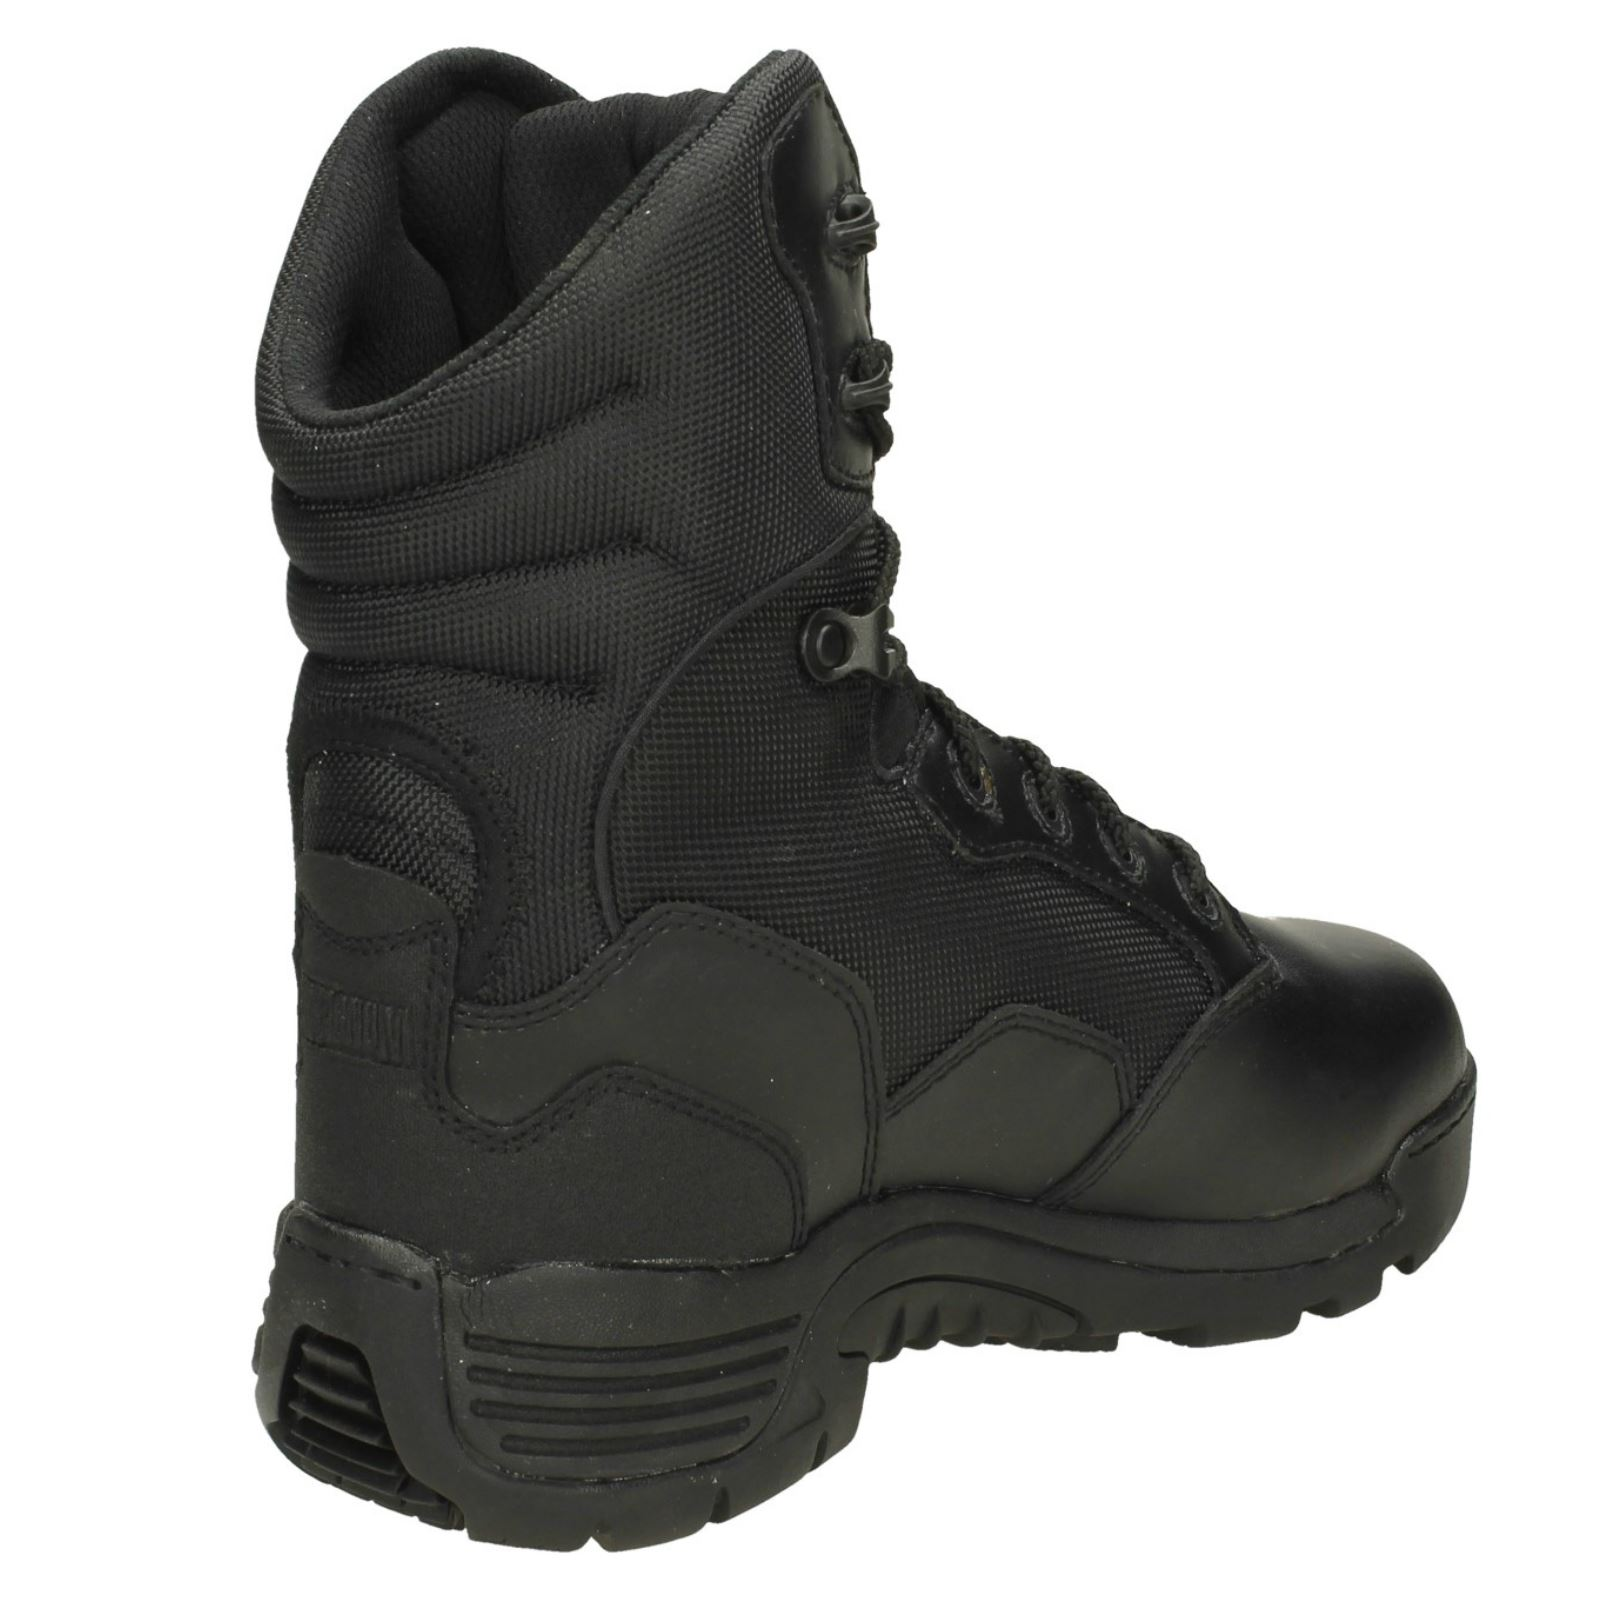 Mens-Magnum-Waterproof-Insulated-Boots-039-Strike-Force-II-039 thumbnail 6